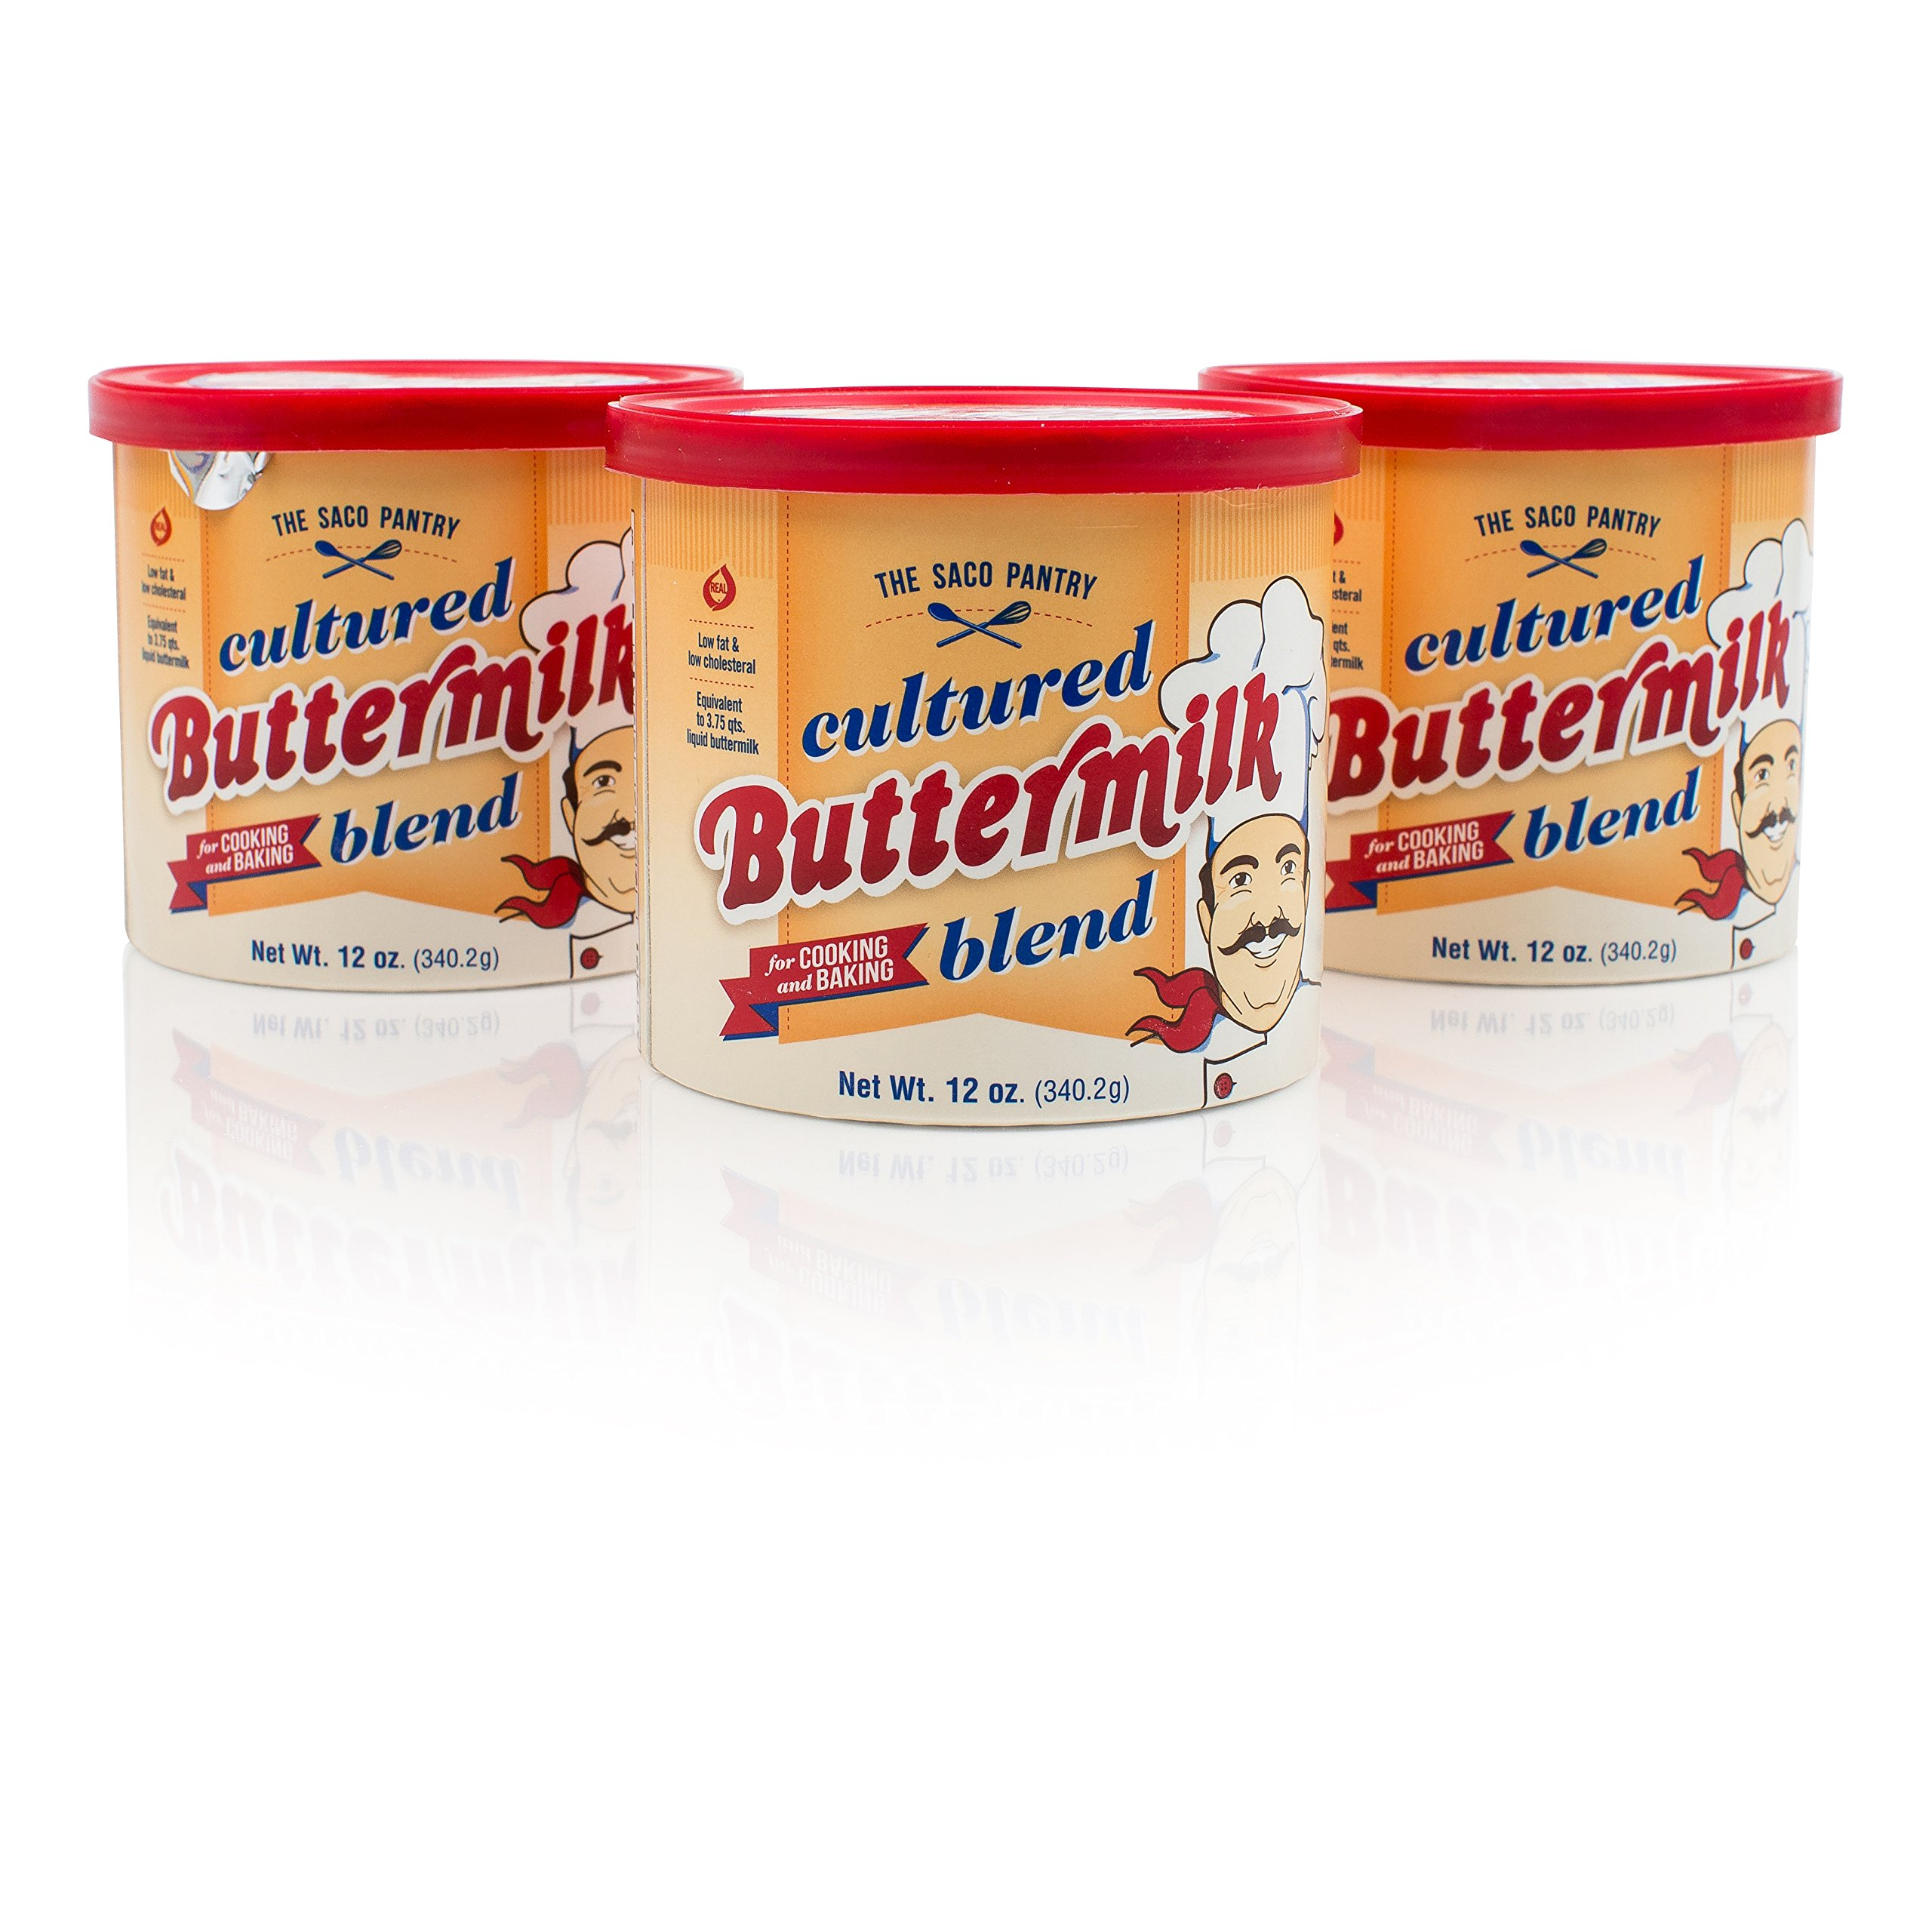 SACO Pantry Cultured Buttermilk Blend, for Cooking and Baking, Low-Fat, Low-Cholesterol, Gluten-Free, Nut-Free, 12oz, Pack of 3